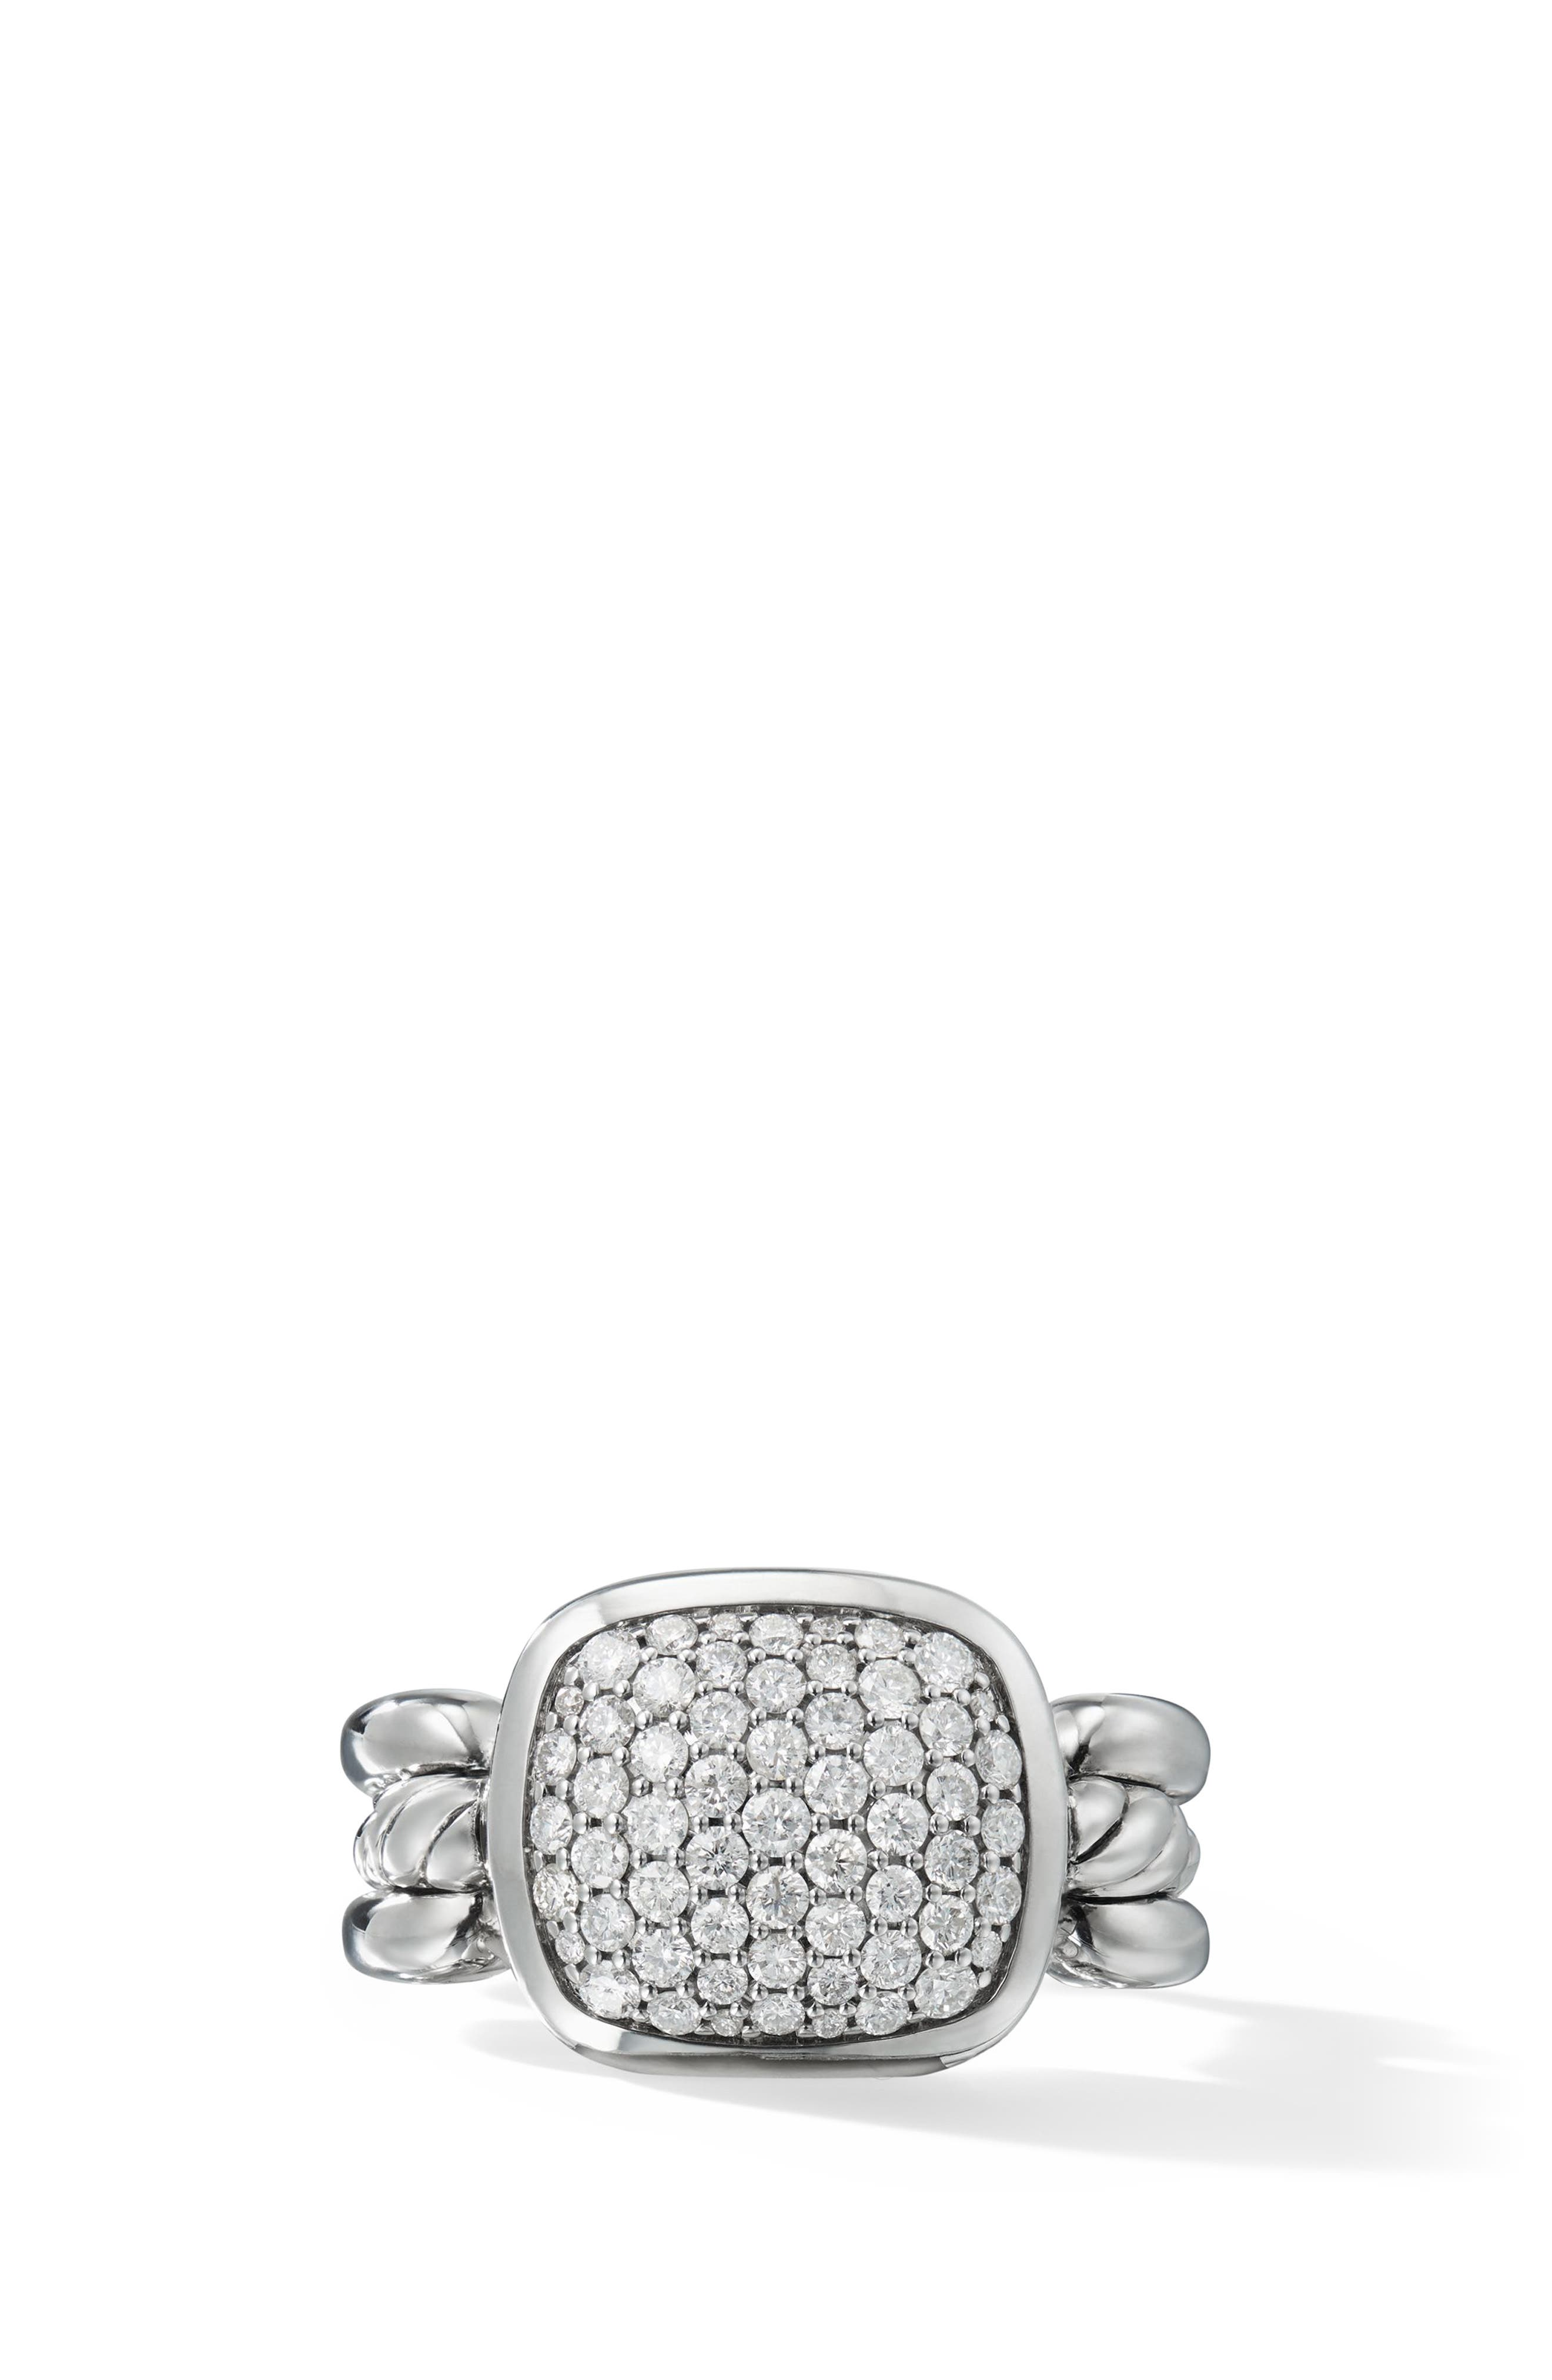 Wellesley Link Ring with Diamonds,                         Main,                         color, SILVER/ DIAMOND